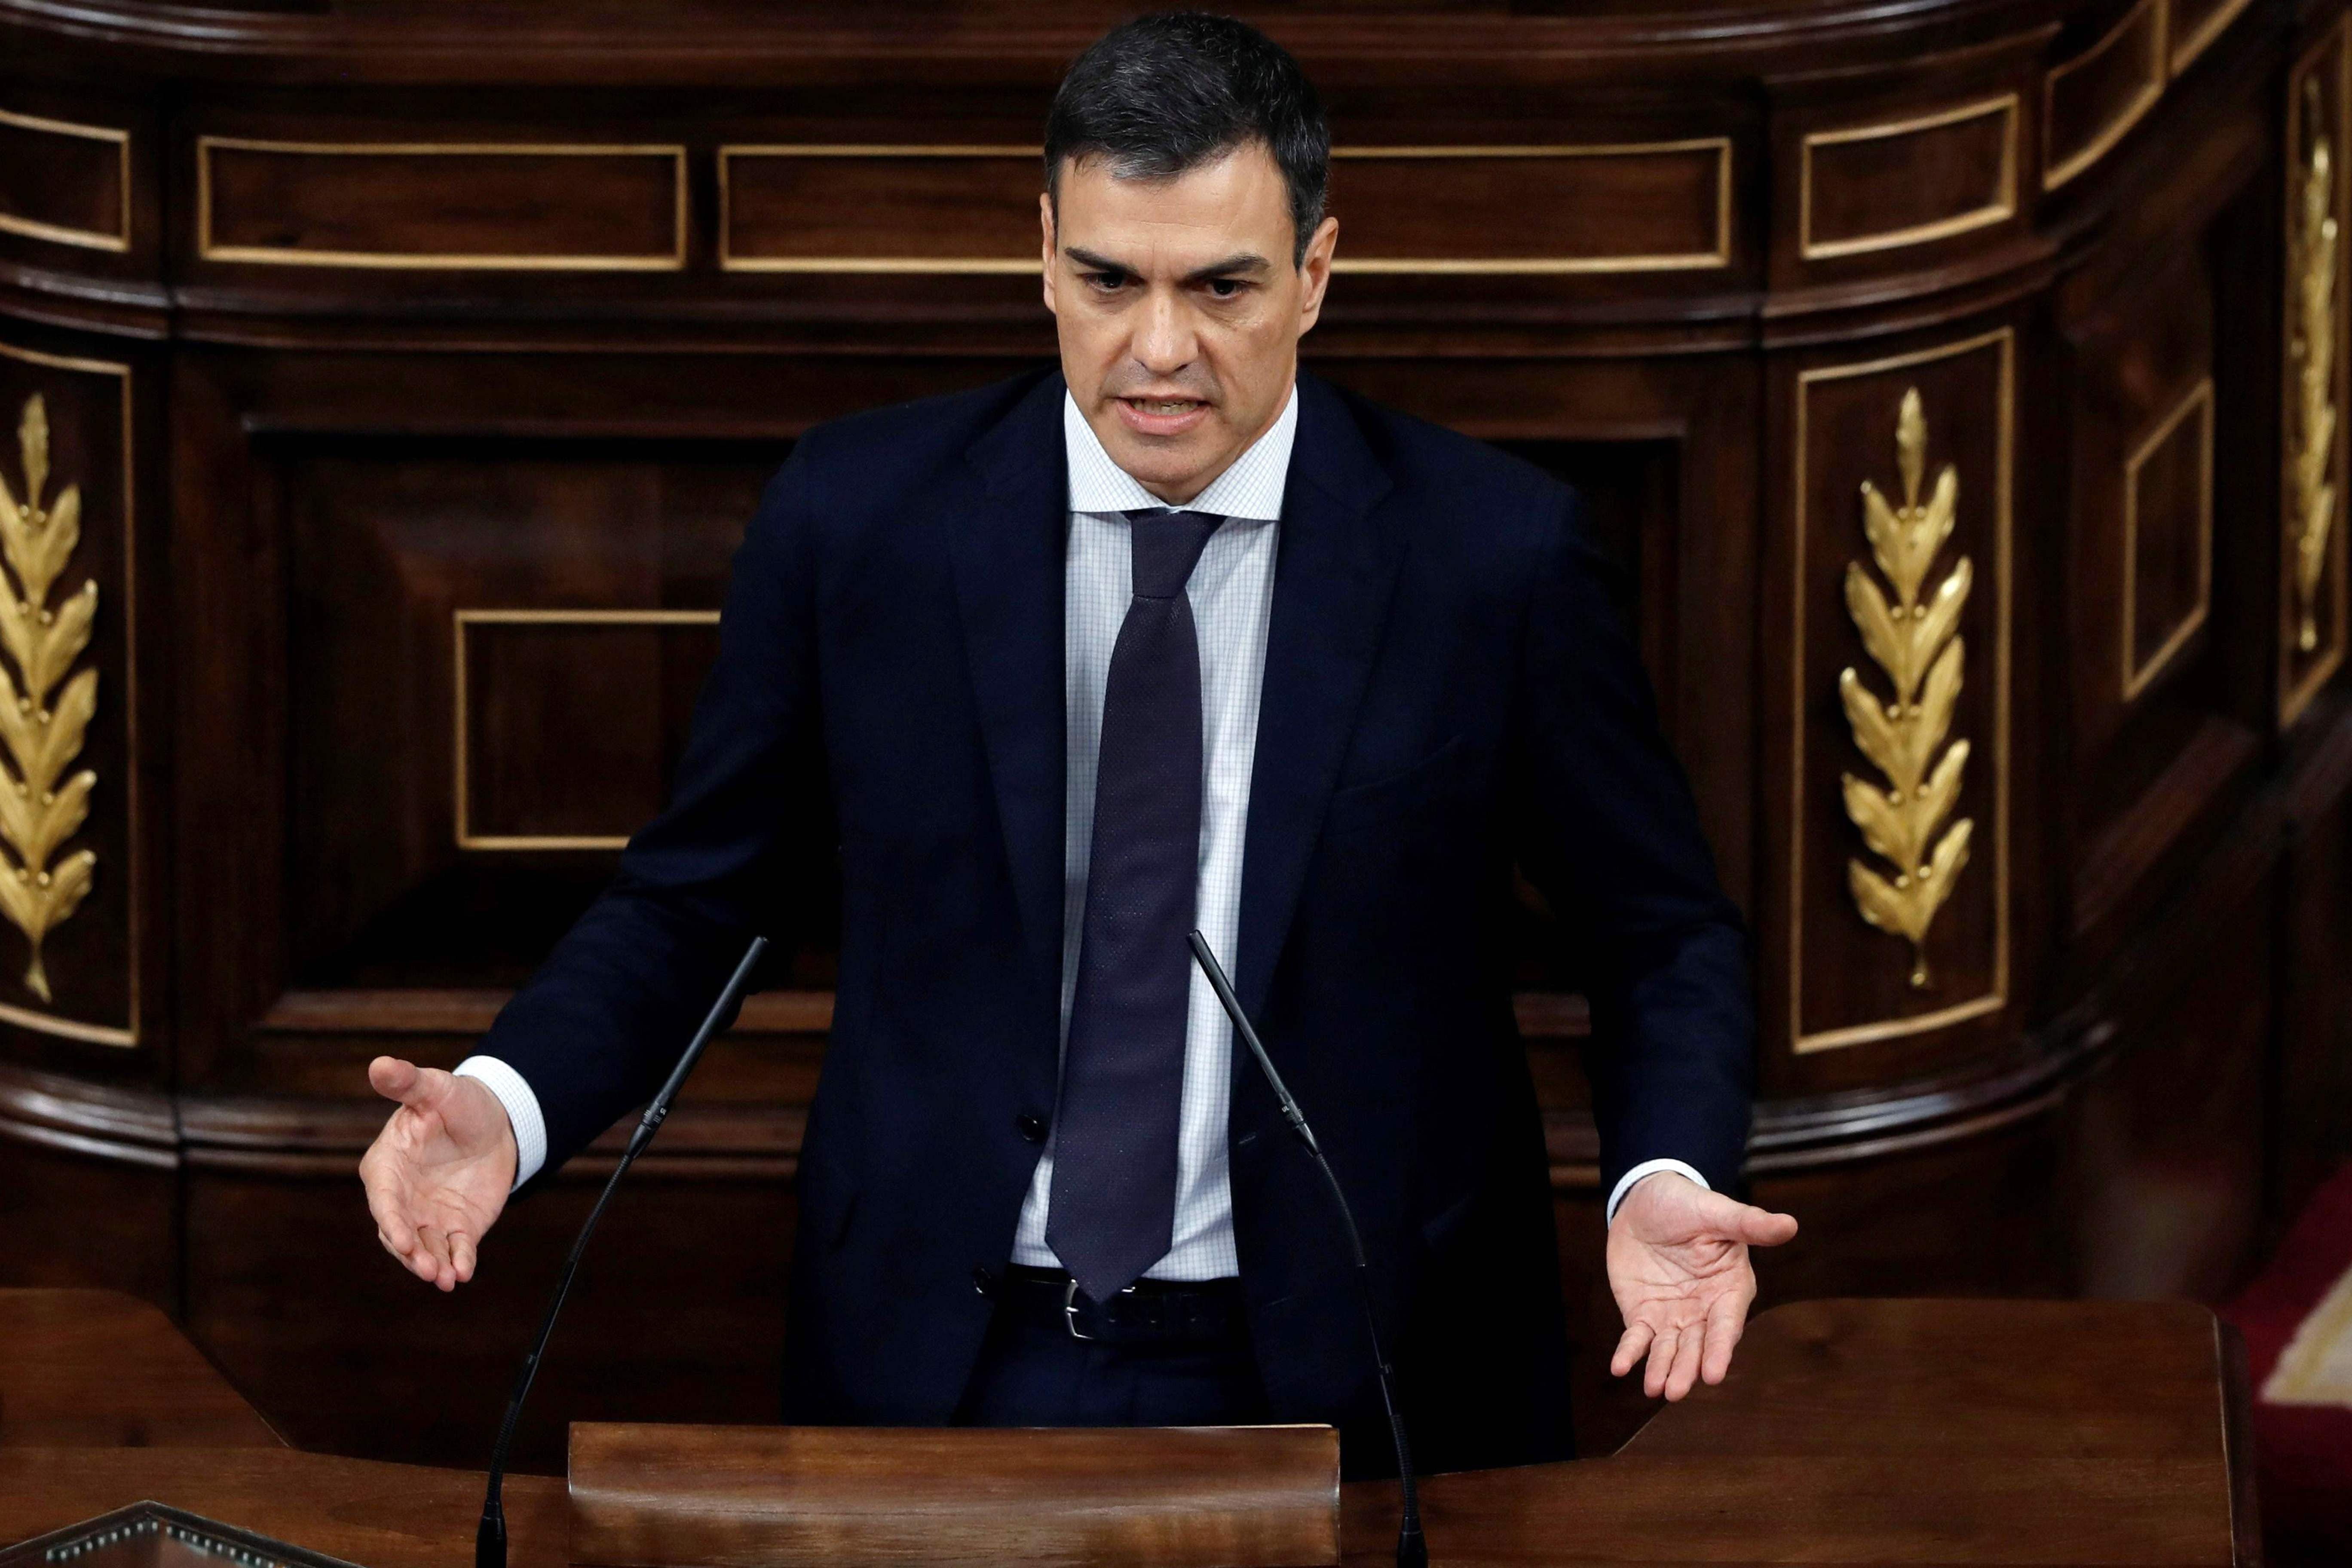 TOPSHOT - Leader of the Spanish Socialist Party PSOE Pedro Sanchez gives a speech during a debate on a no-confidence motion at the Lower House of the Spanish Parliament in Madrid on June 01, 2018.  Bar any last-minute u-turn, an absolute majority of lawmakers as varied as Catalan separatists and Basque nationalists will vote the no-confidence motion filed last week by the Socialists over a string of corruption woes hitting Spanish Prime Minister Mariano Rajoy's conservative Popular Party (PP). / AFP / POOL / Emilio Naranjo